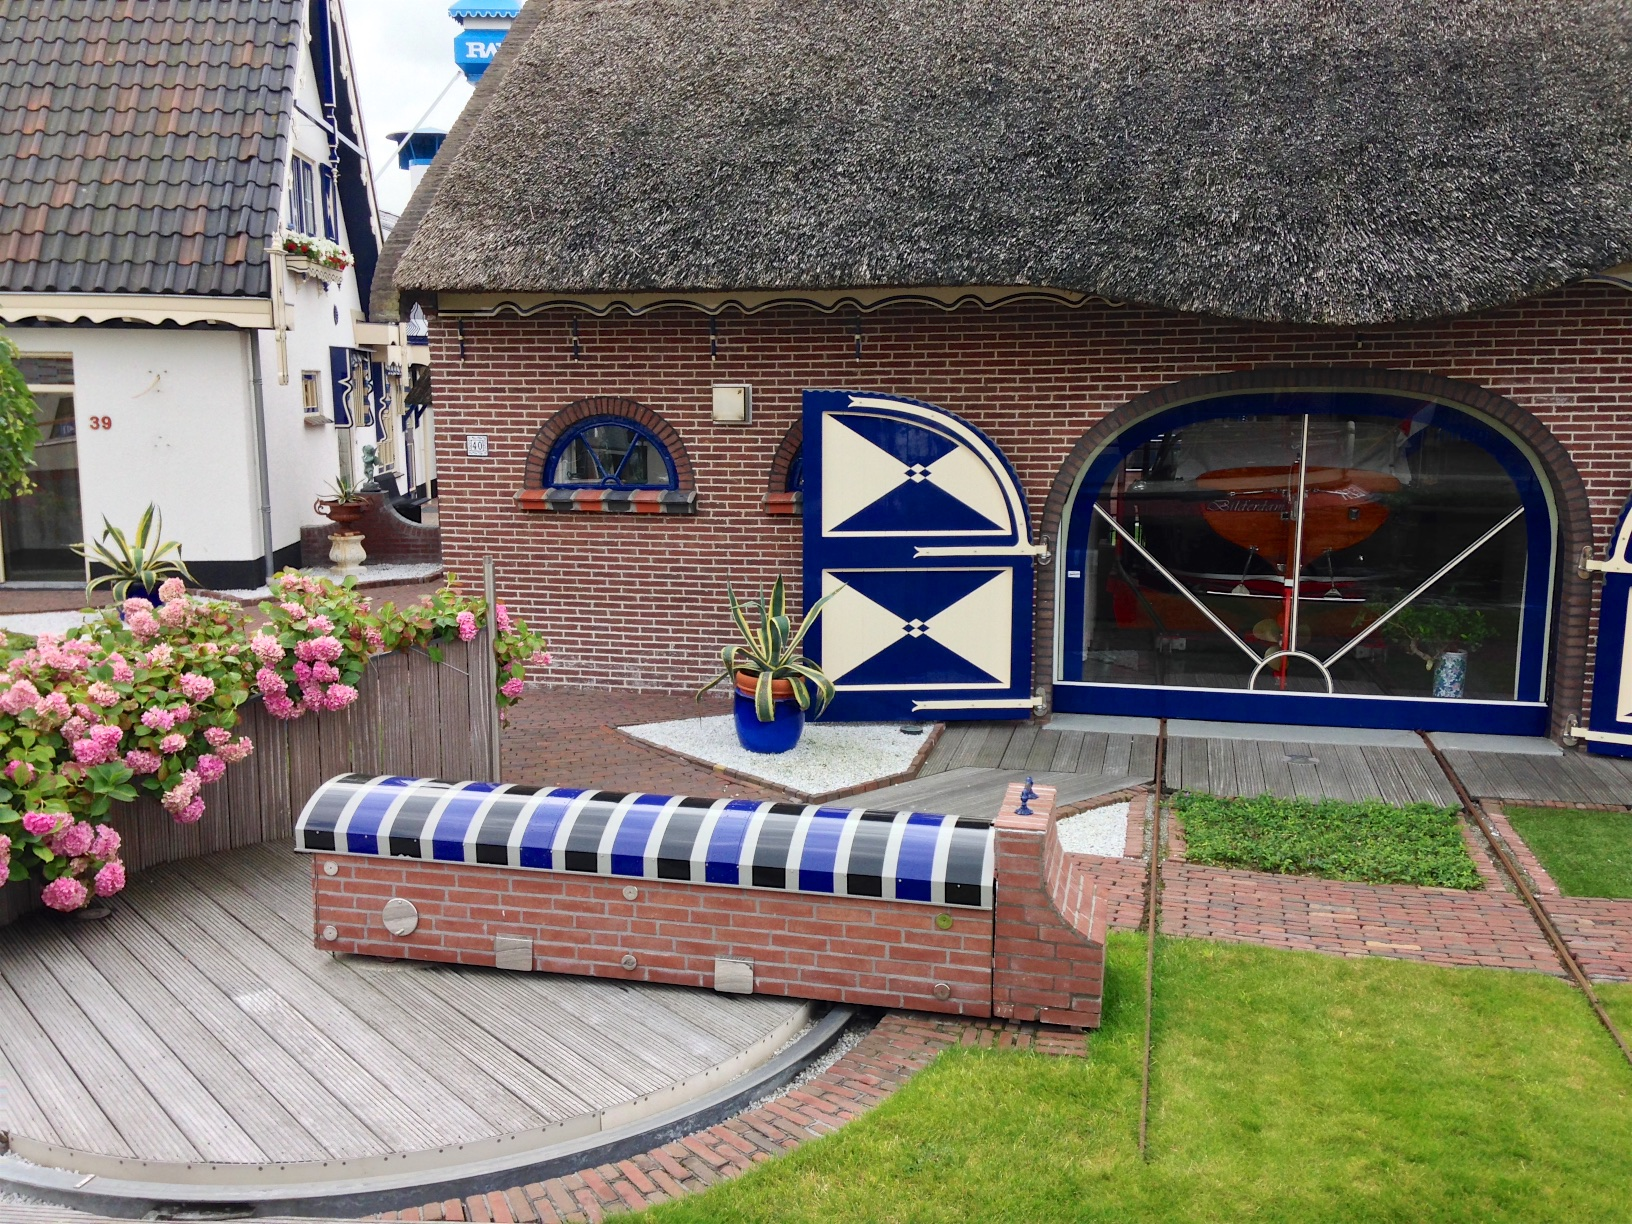 Scenic: thatched houses with sophisticated garage for their boat - but I can't imagine what the turntable is for.